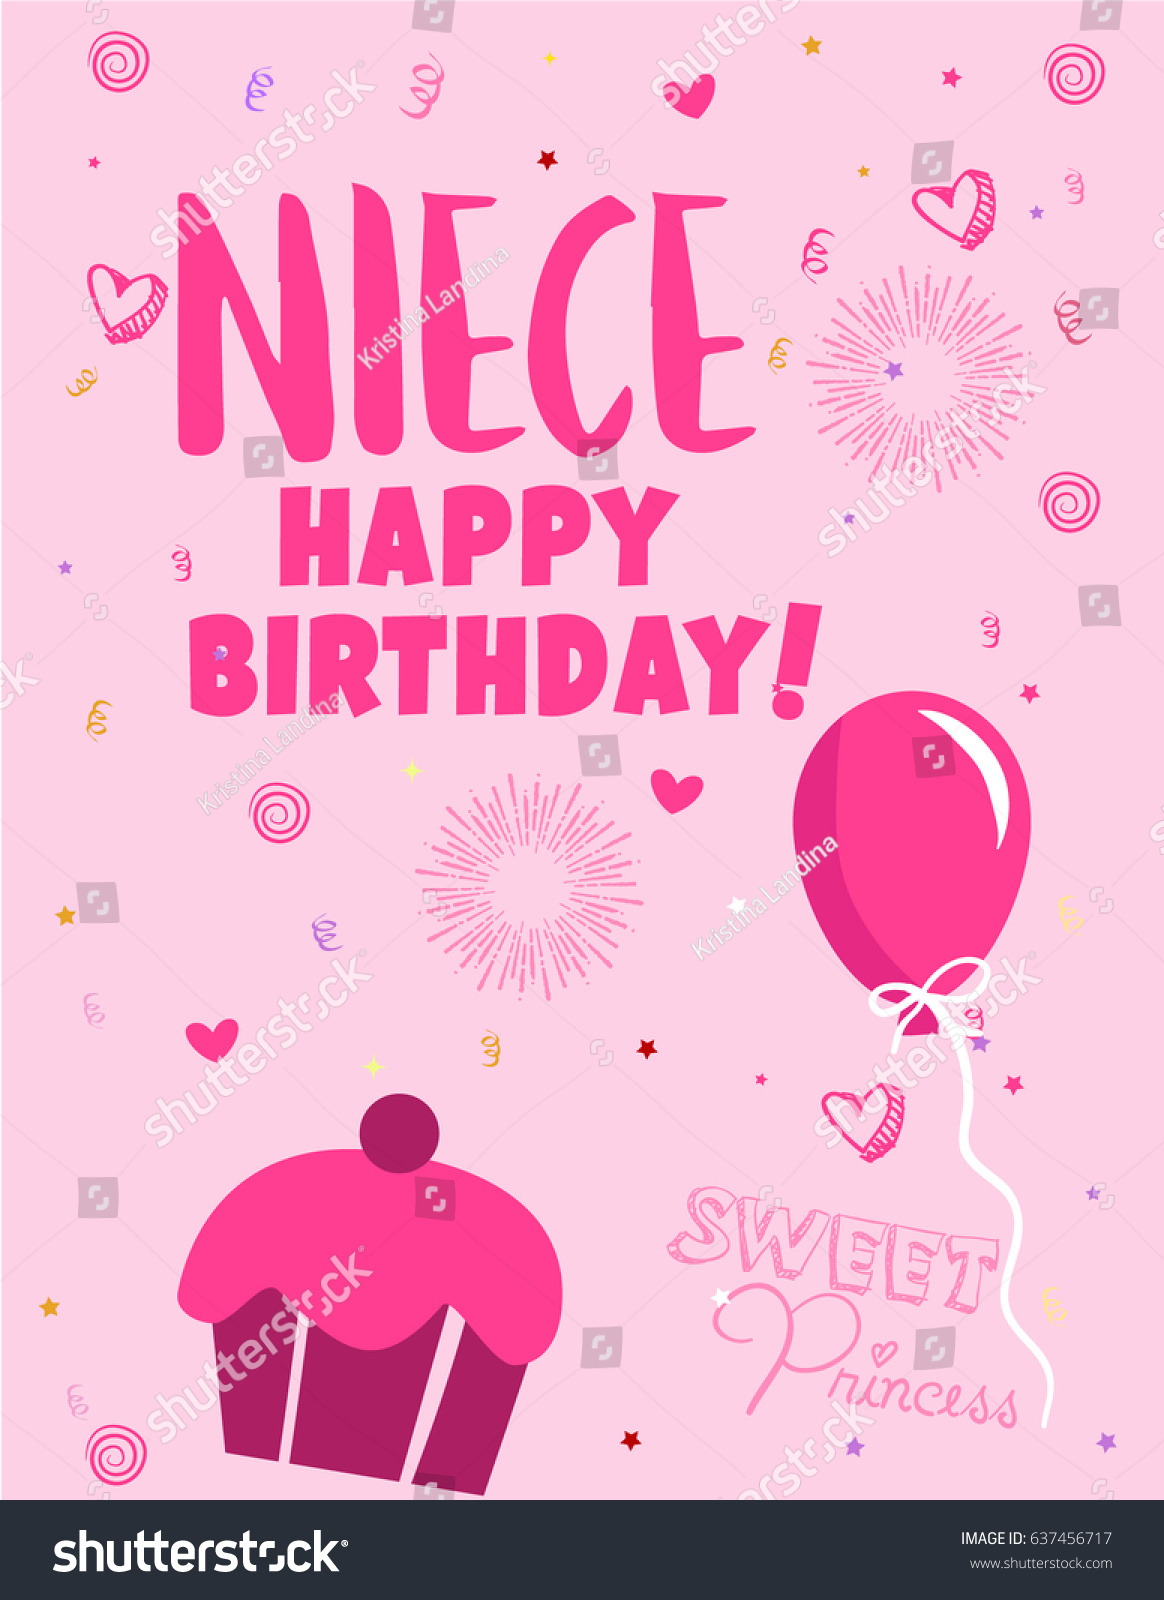 E Card Greeting Card Happy Birthday Niece Stock Vector Royalty Free